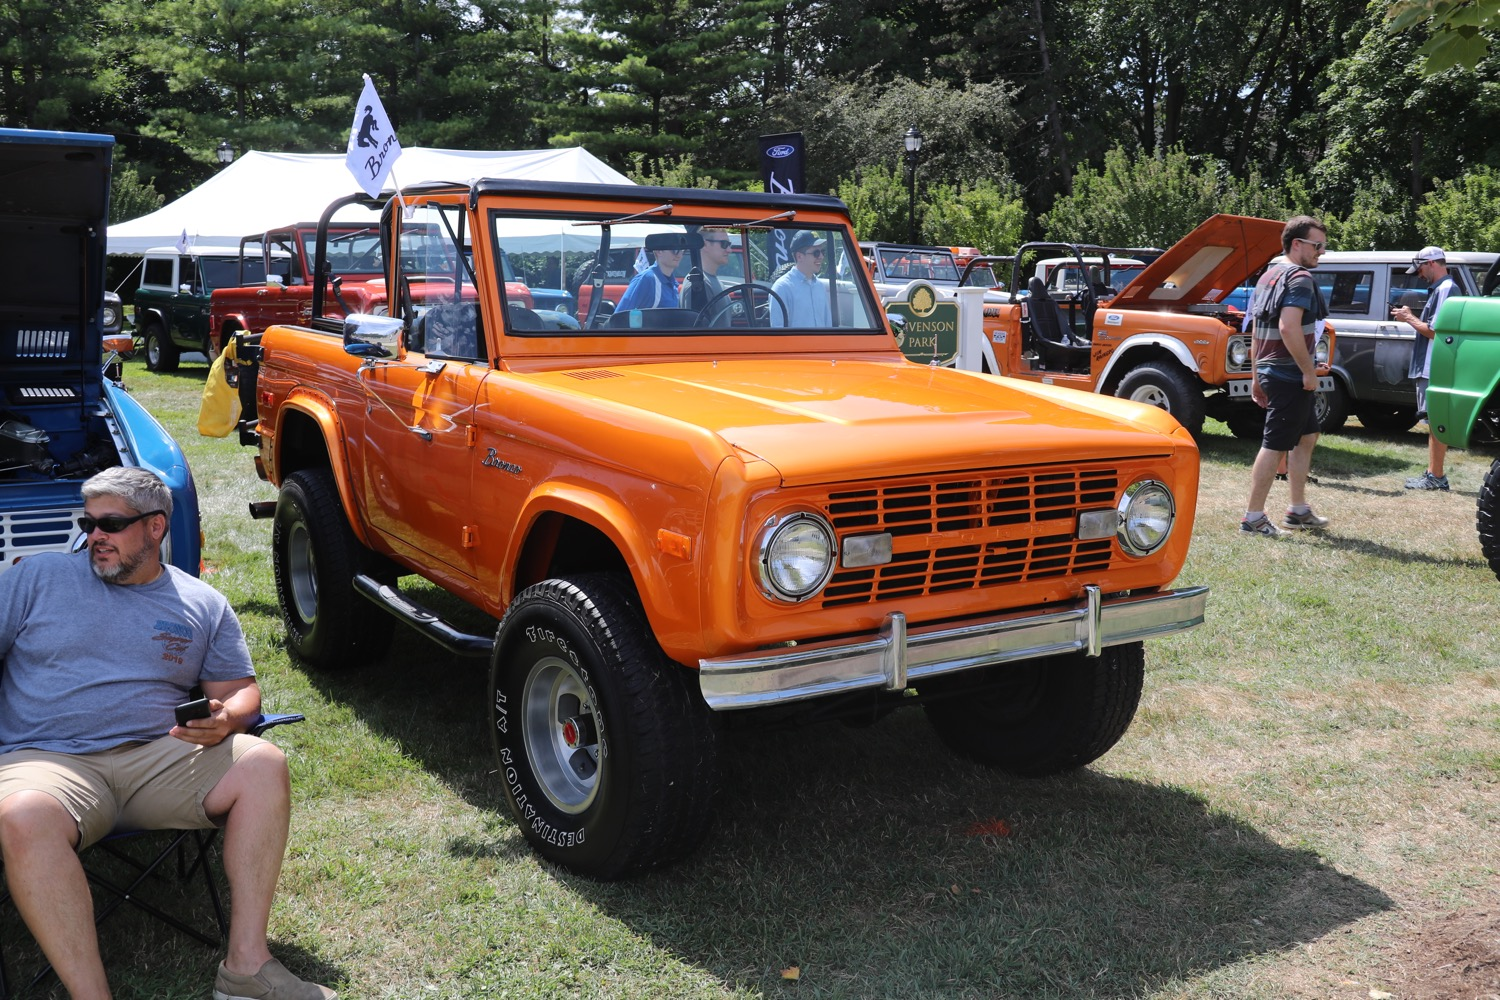 Woodward Ford-Bronco-Exhibit-at-2019-Woodward-Dream-Cruise-0049.jpg